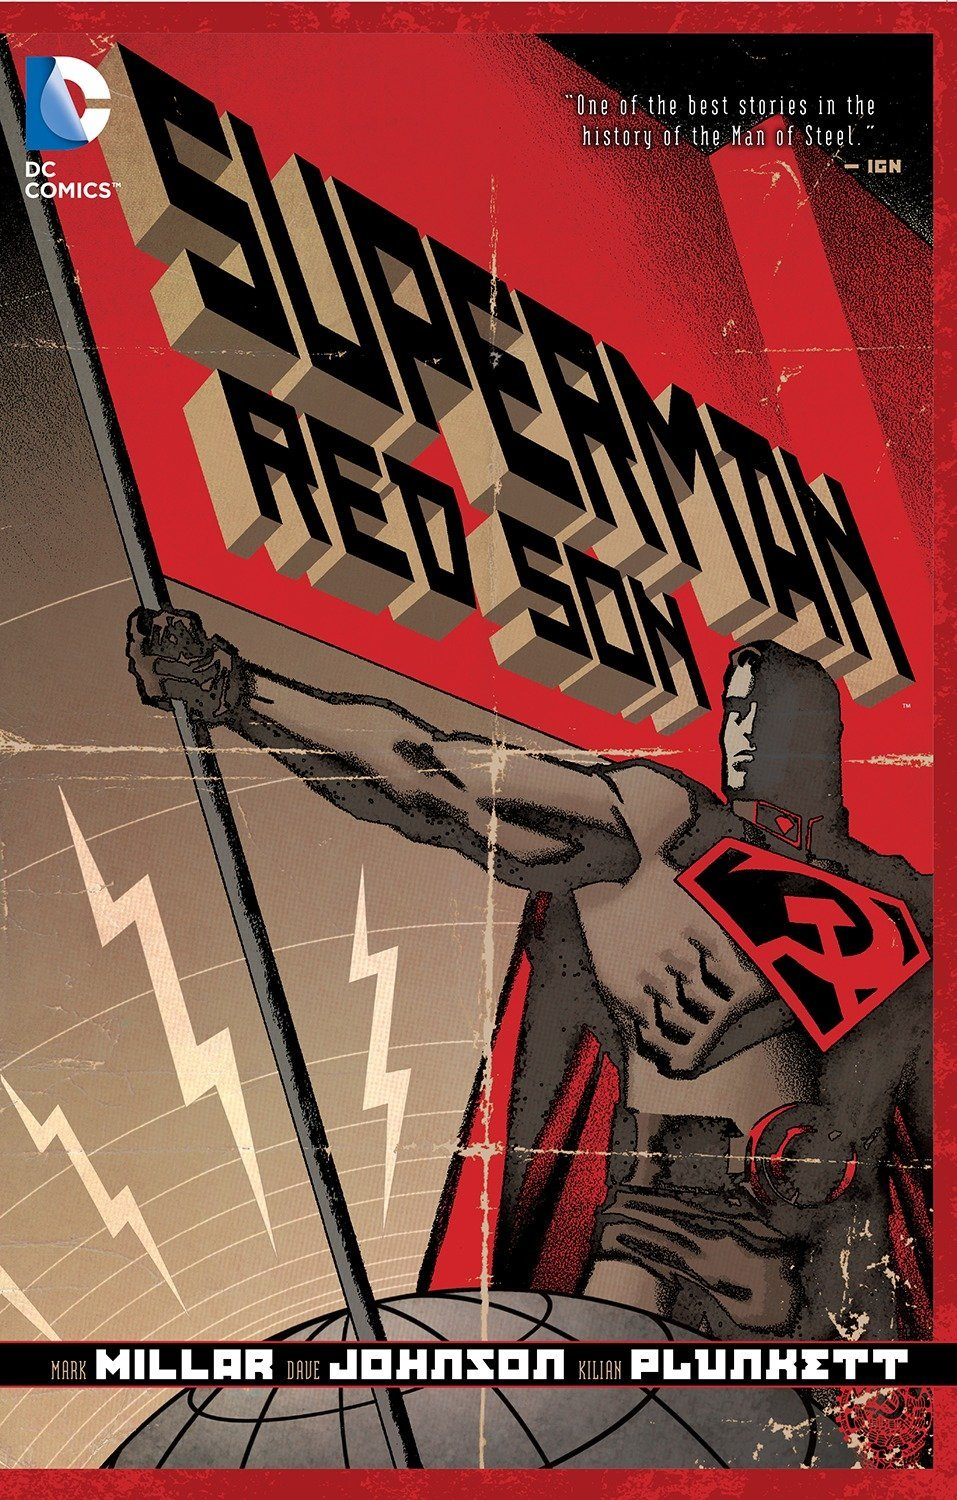 Amazon Com Superman Red Son New Edition 9781401247119 Millar Mark Johnson Dave Books